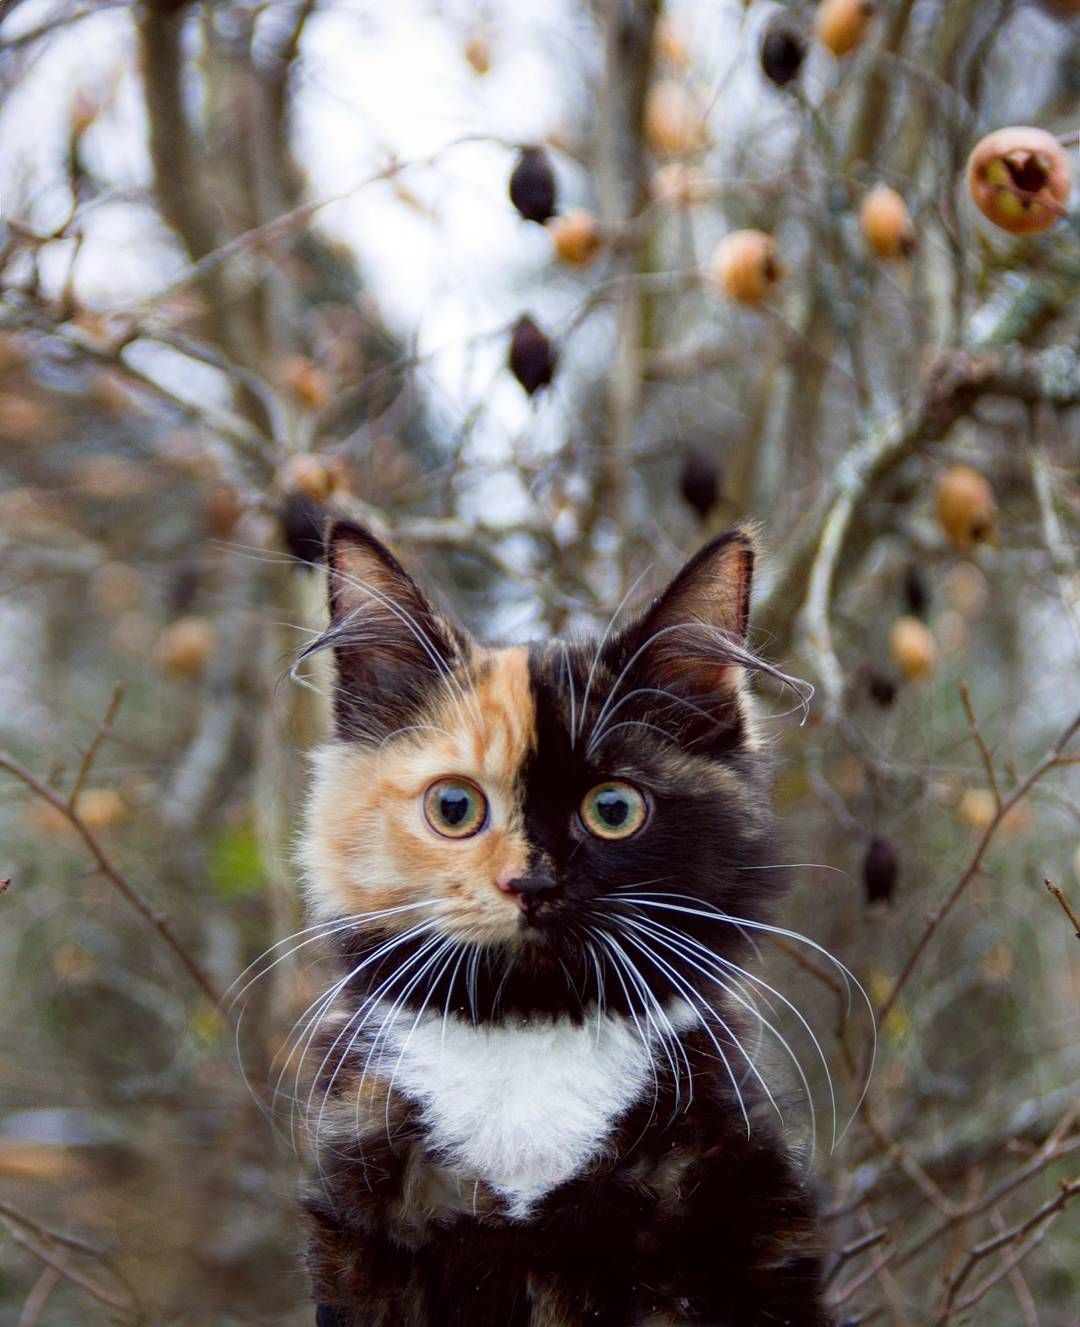 A Gorgeous Tortoiseshell Calico Cat Whose Adorable Face Is Half Orange And Half Black Two Faced Cat Calico Cat Pretty Cats